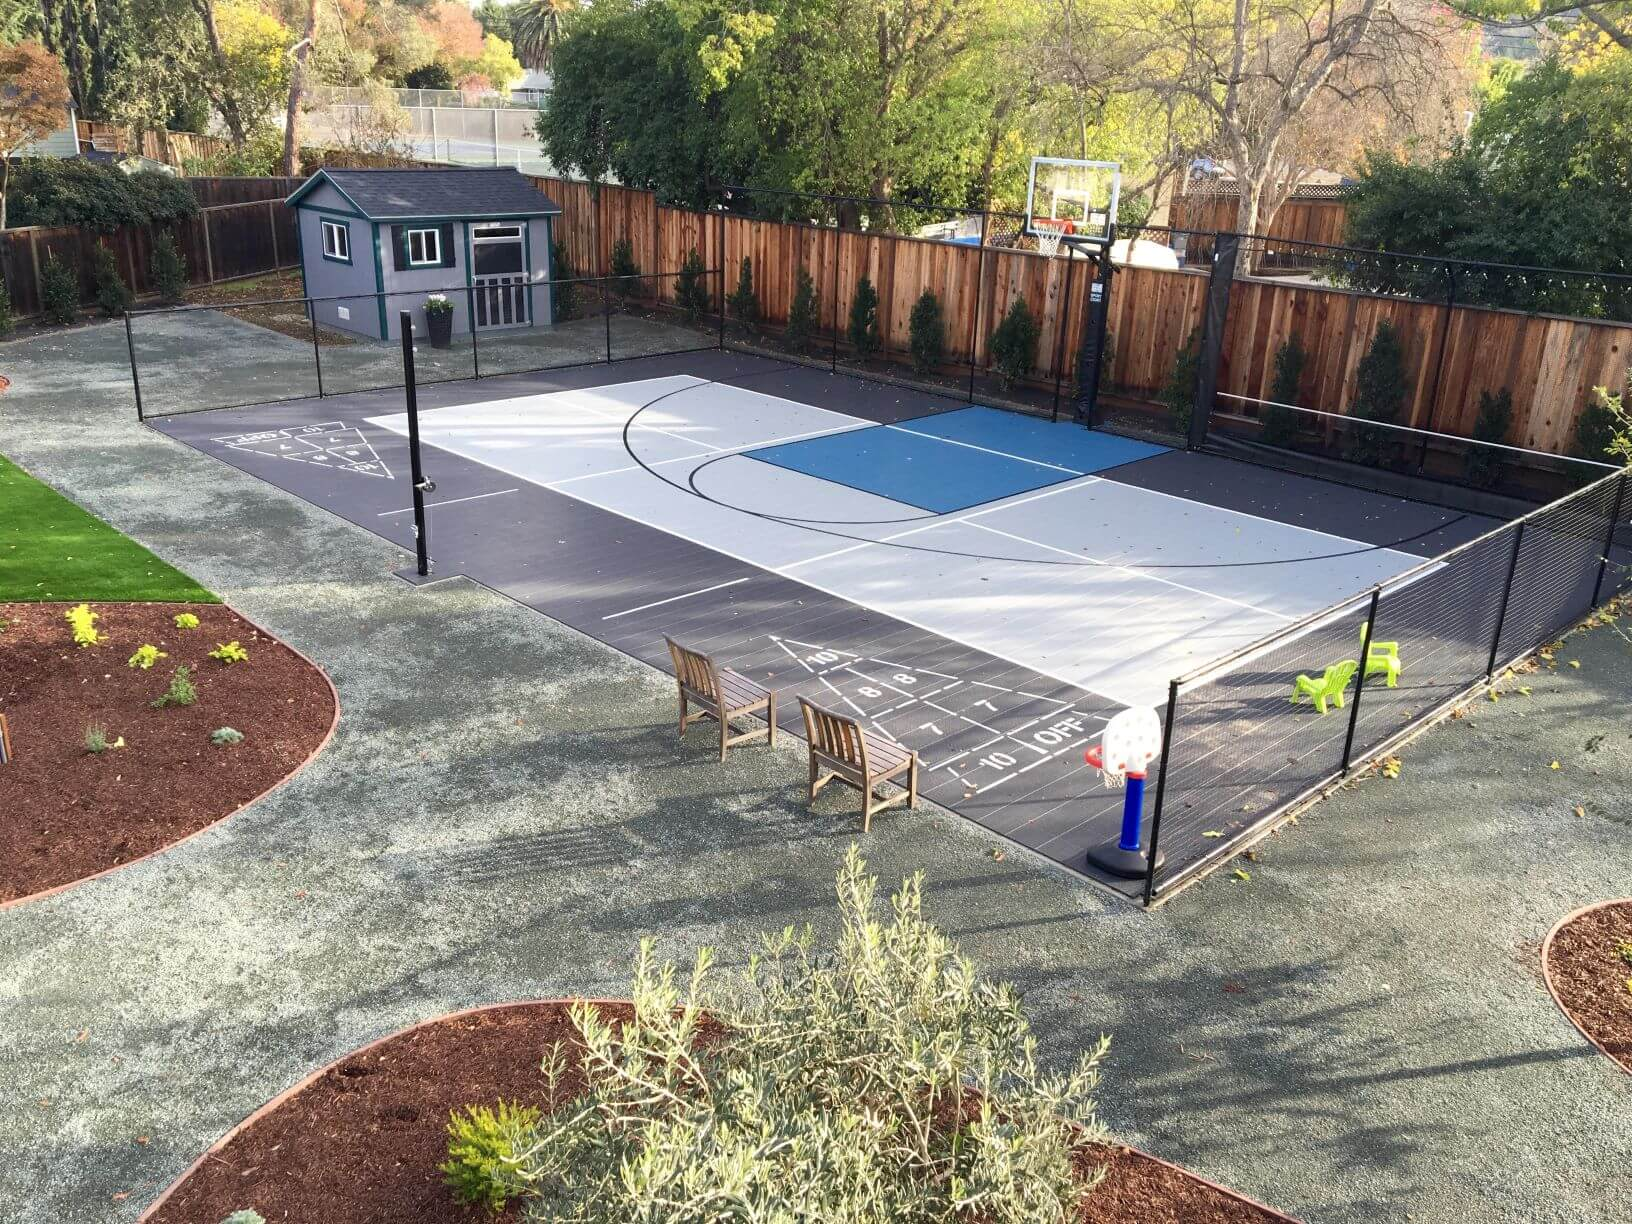 Backyard Residential Sport Court Game Court, Basketball, Pickleball, Shuffleboard Court Walnut Creek